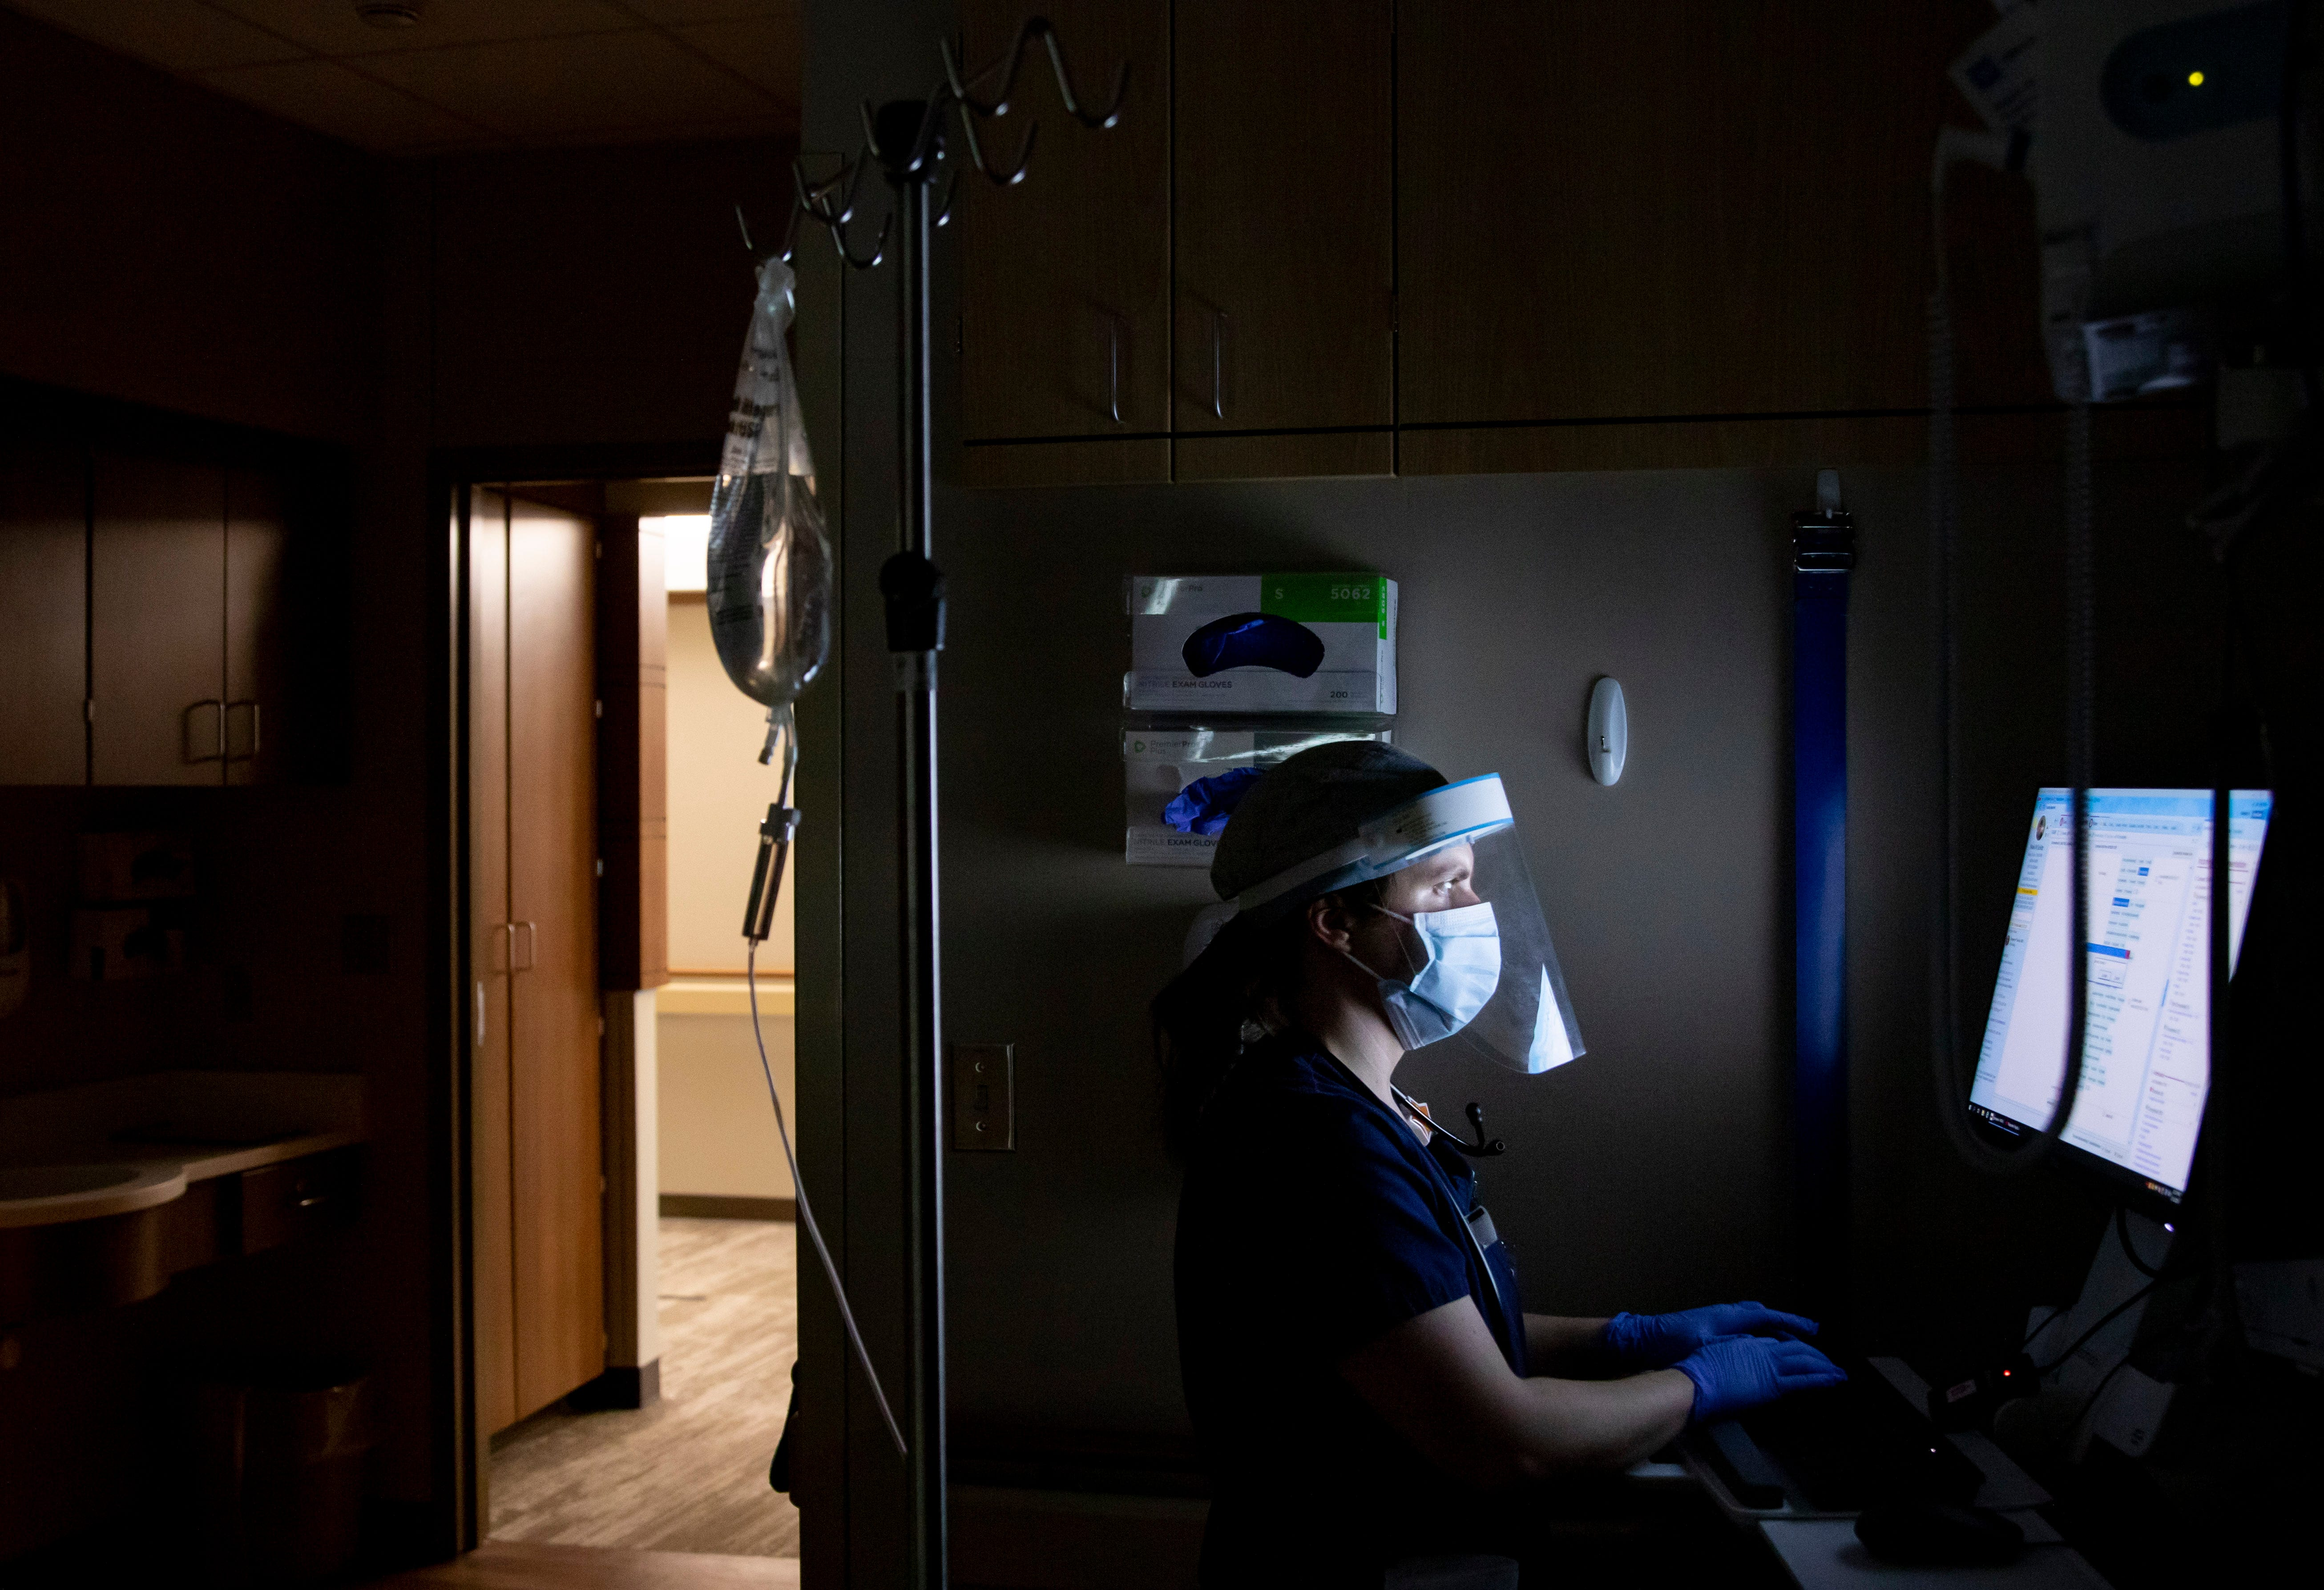 Nurse Amanda Baetsle enters information into a patient's chart at Mary Greeley Medical Center in Ames on Feb. 12, 2021.